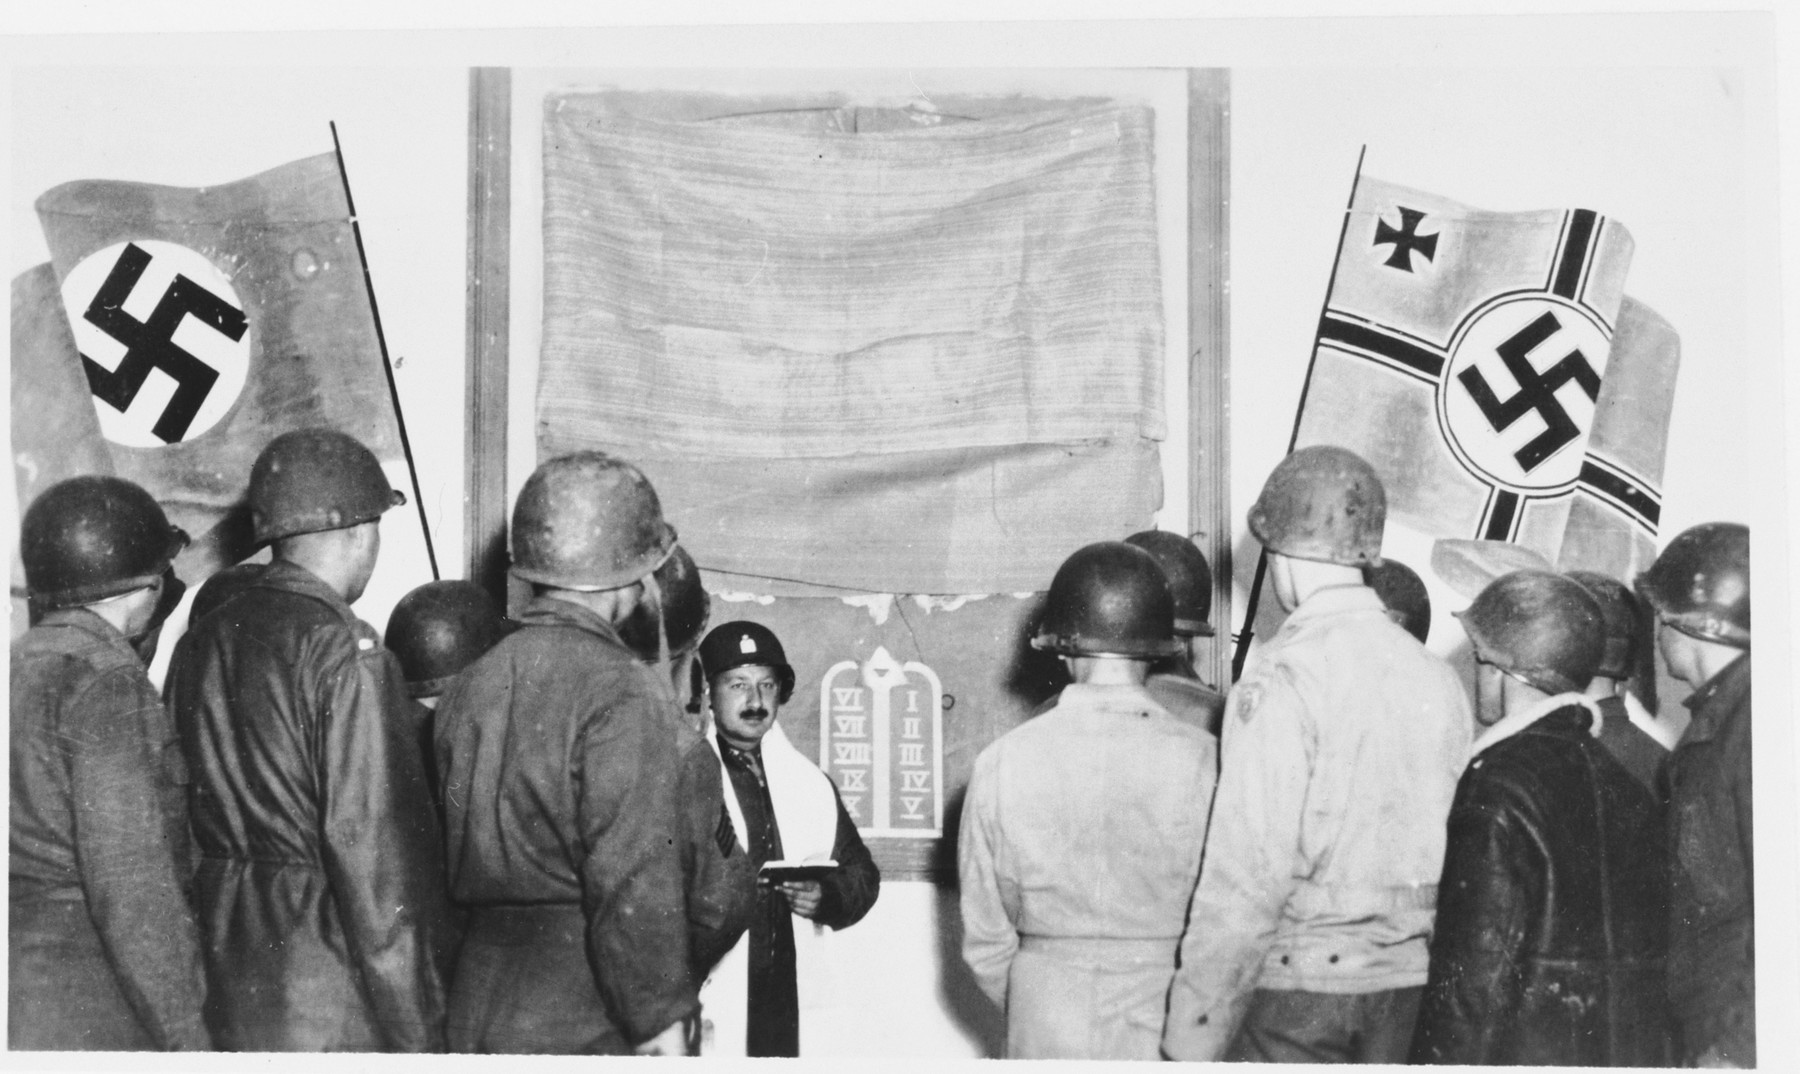 Jewish soldiers in the U.S. army hold religious services in a room decorated with Nazi flags.